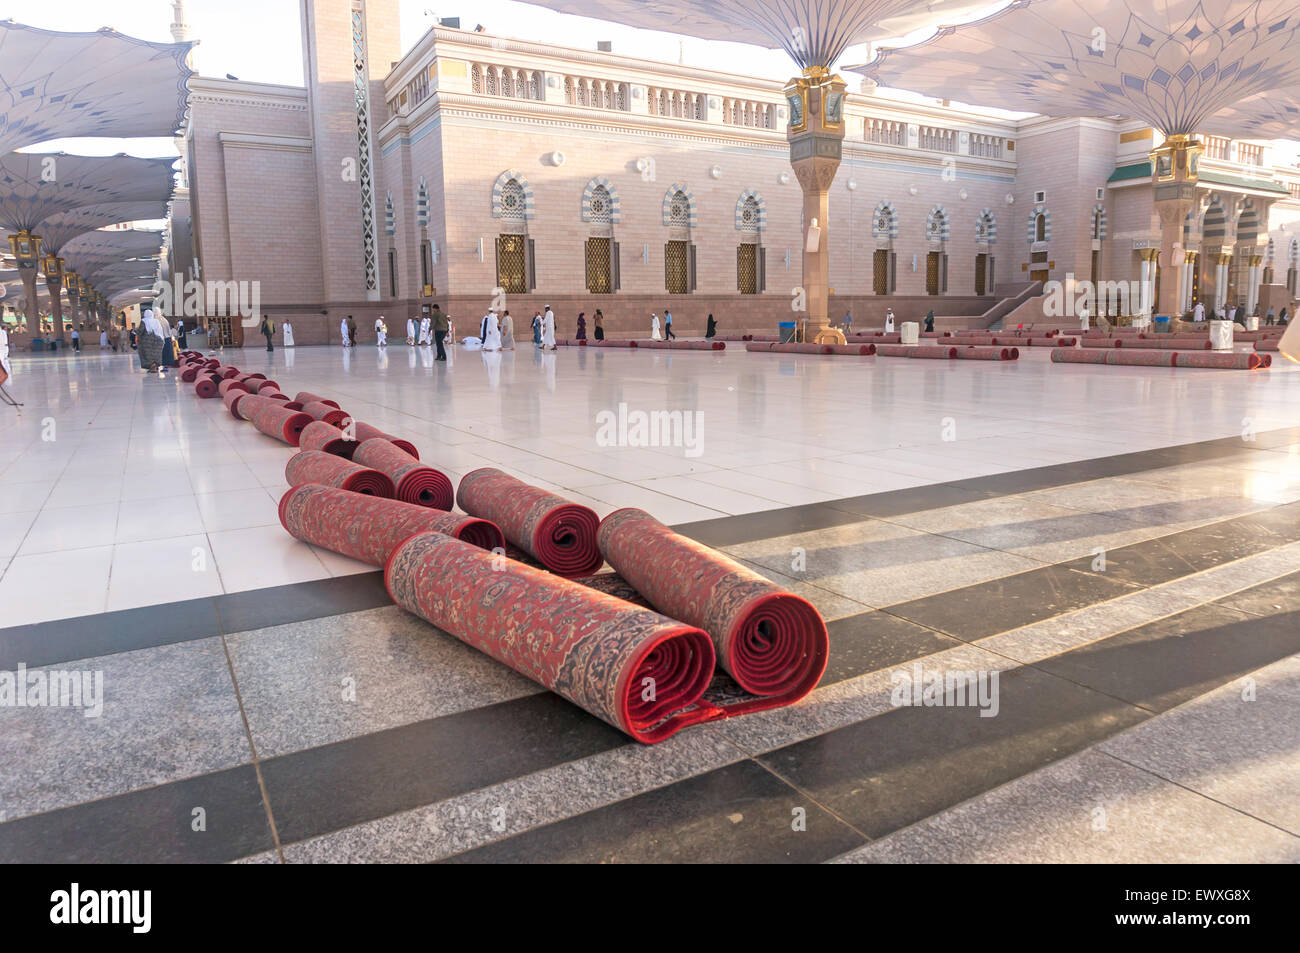 MEDINA - MARCH 06 : Mat rolls for cleaning at Nabawi Mosque compound on March 06, 2015 in Medina, Kingdom of Saudi Stock Photo